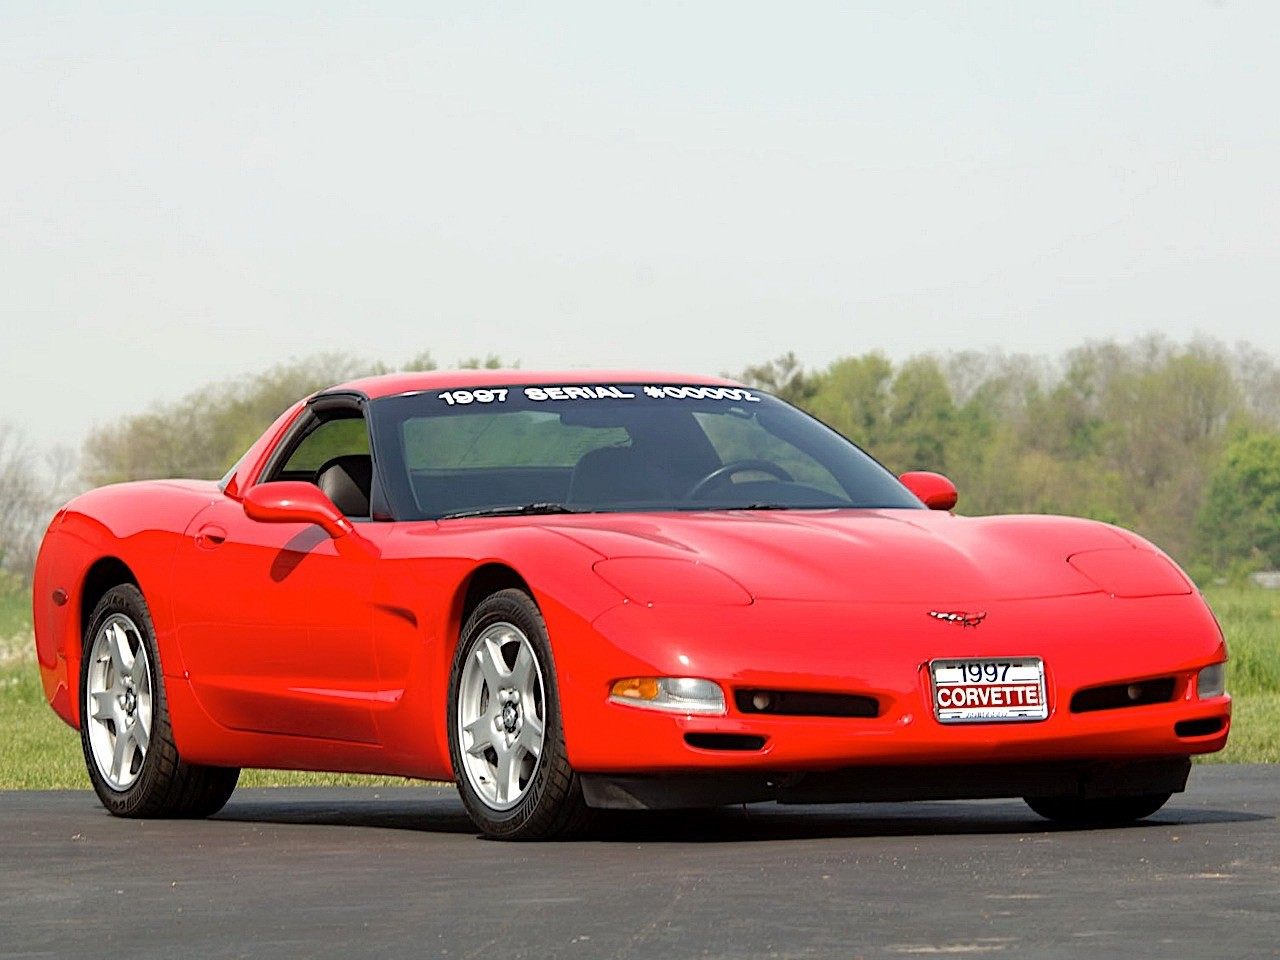 Chevrolet Corvette C Coupe on 1999 Corvette Ls1 Engine Specs